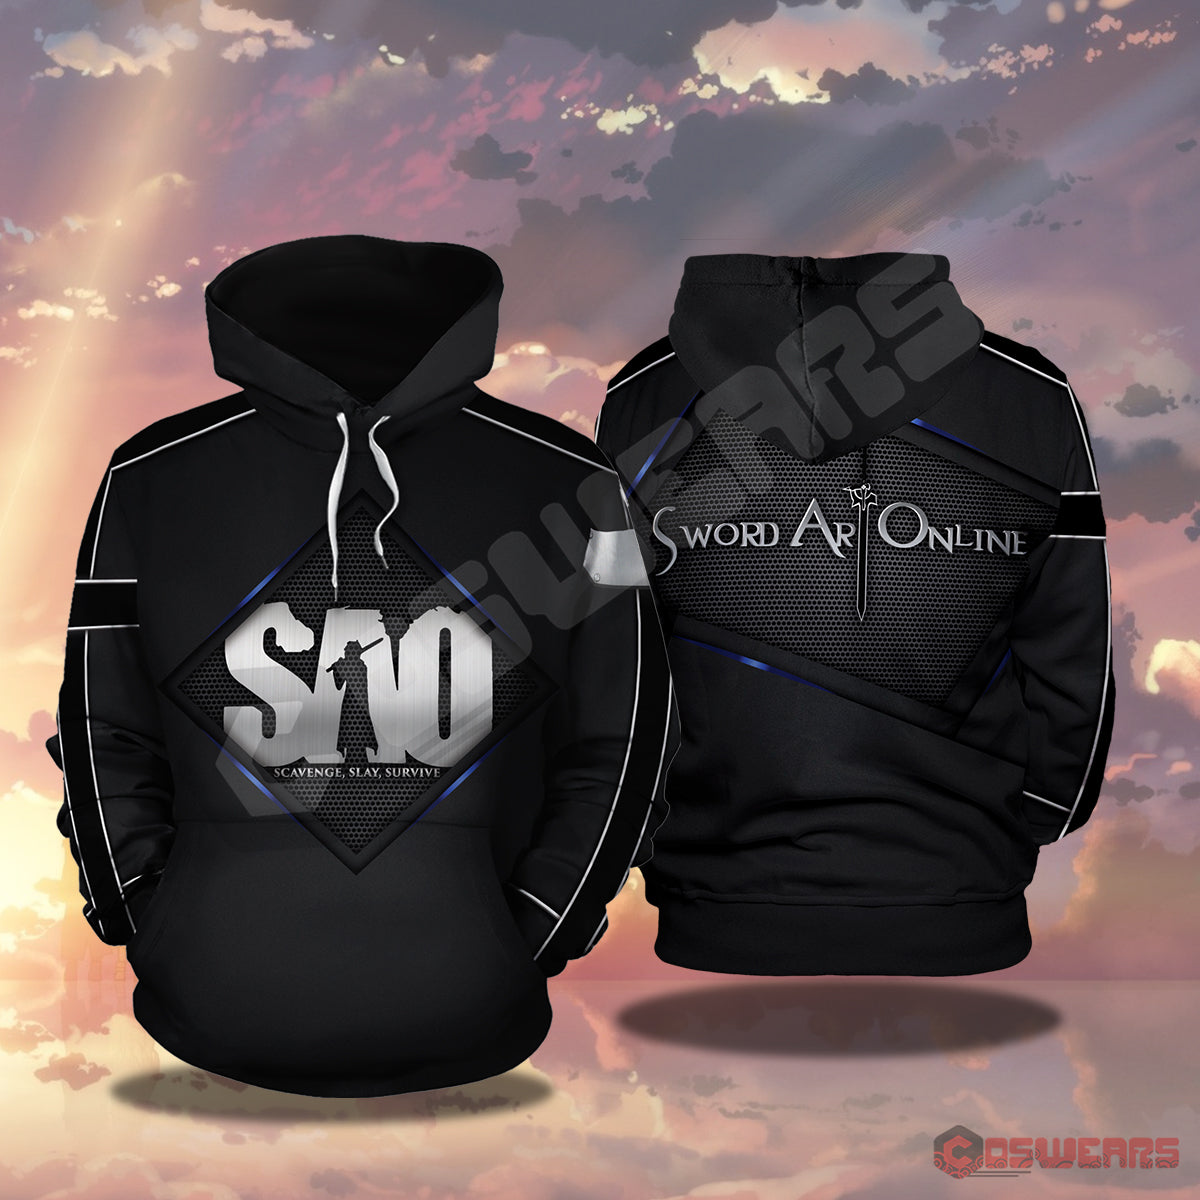 Sword Art Online: Sword Art Logo Inspired Pullover Hoodie